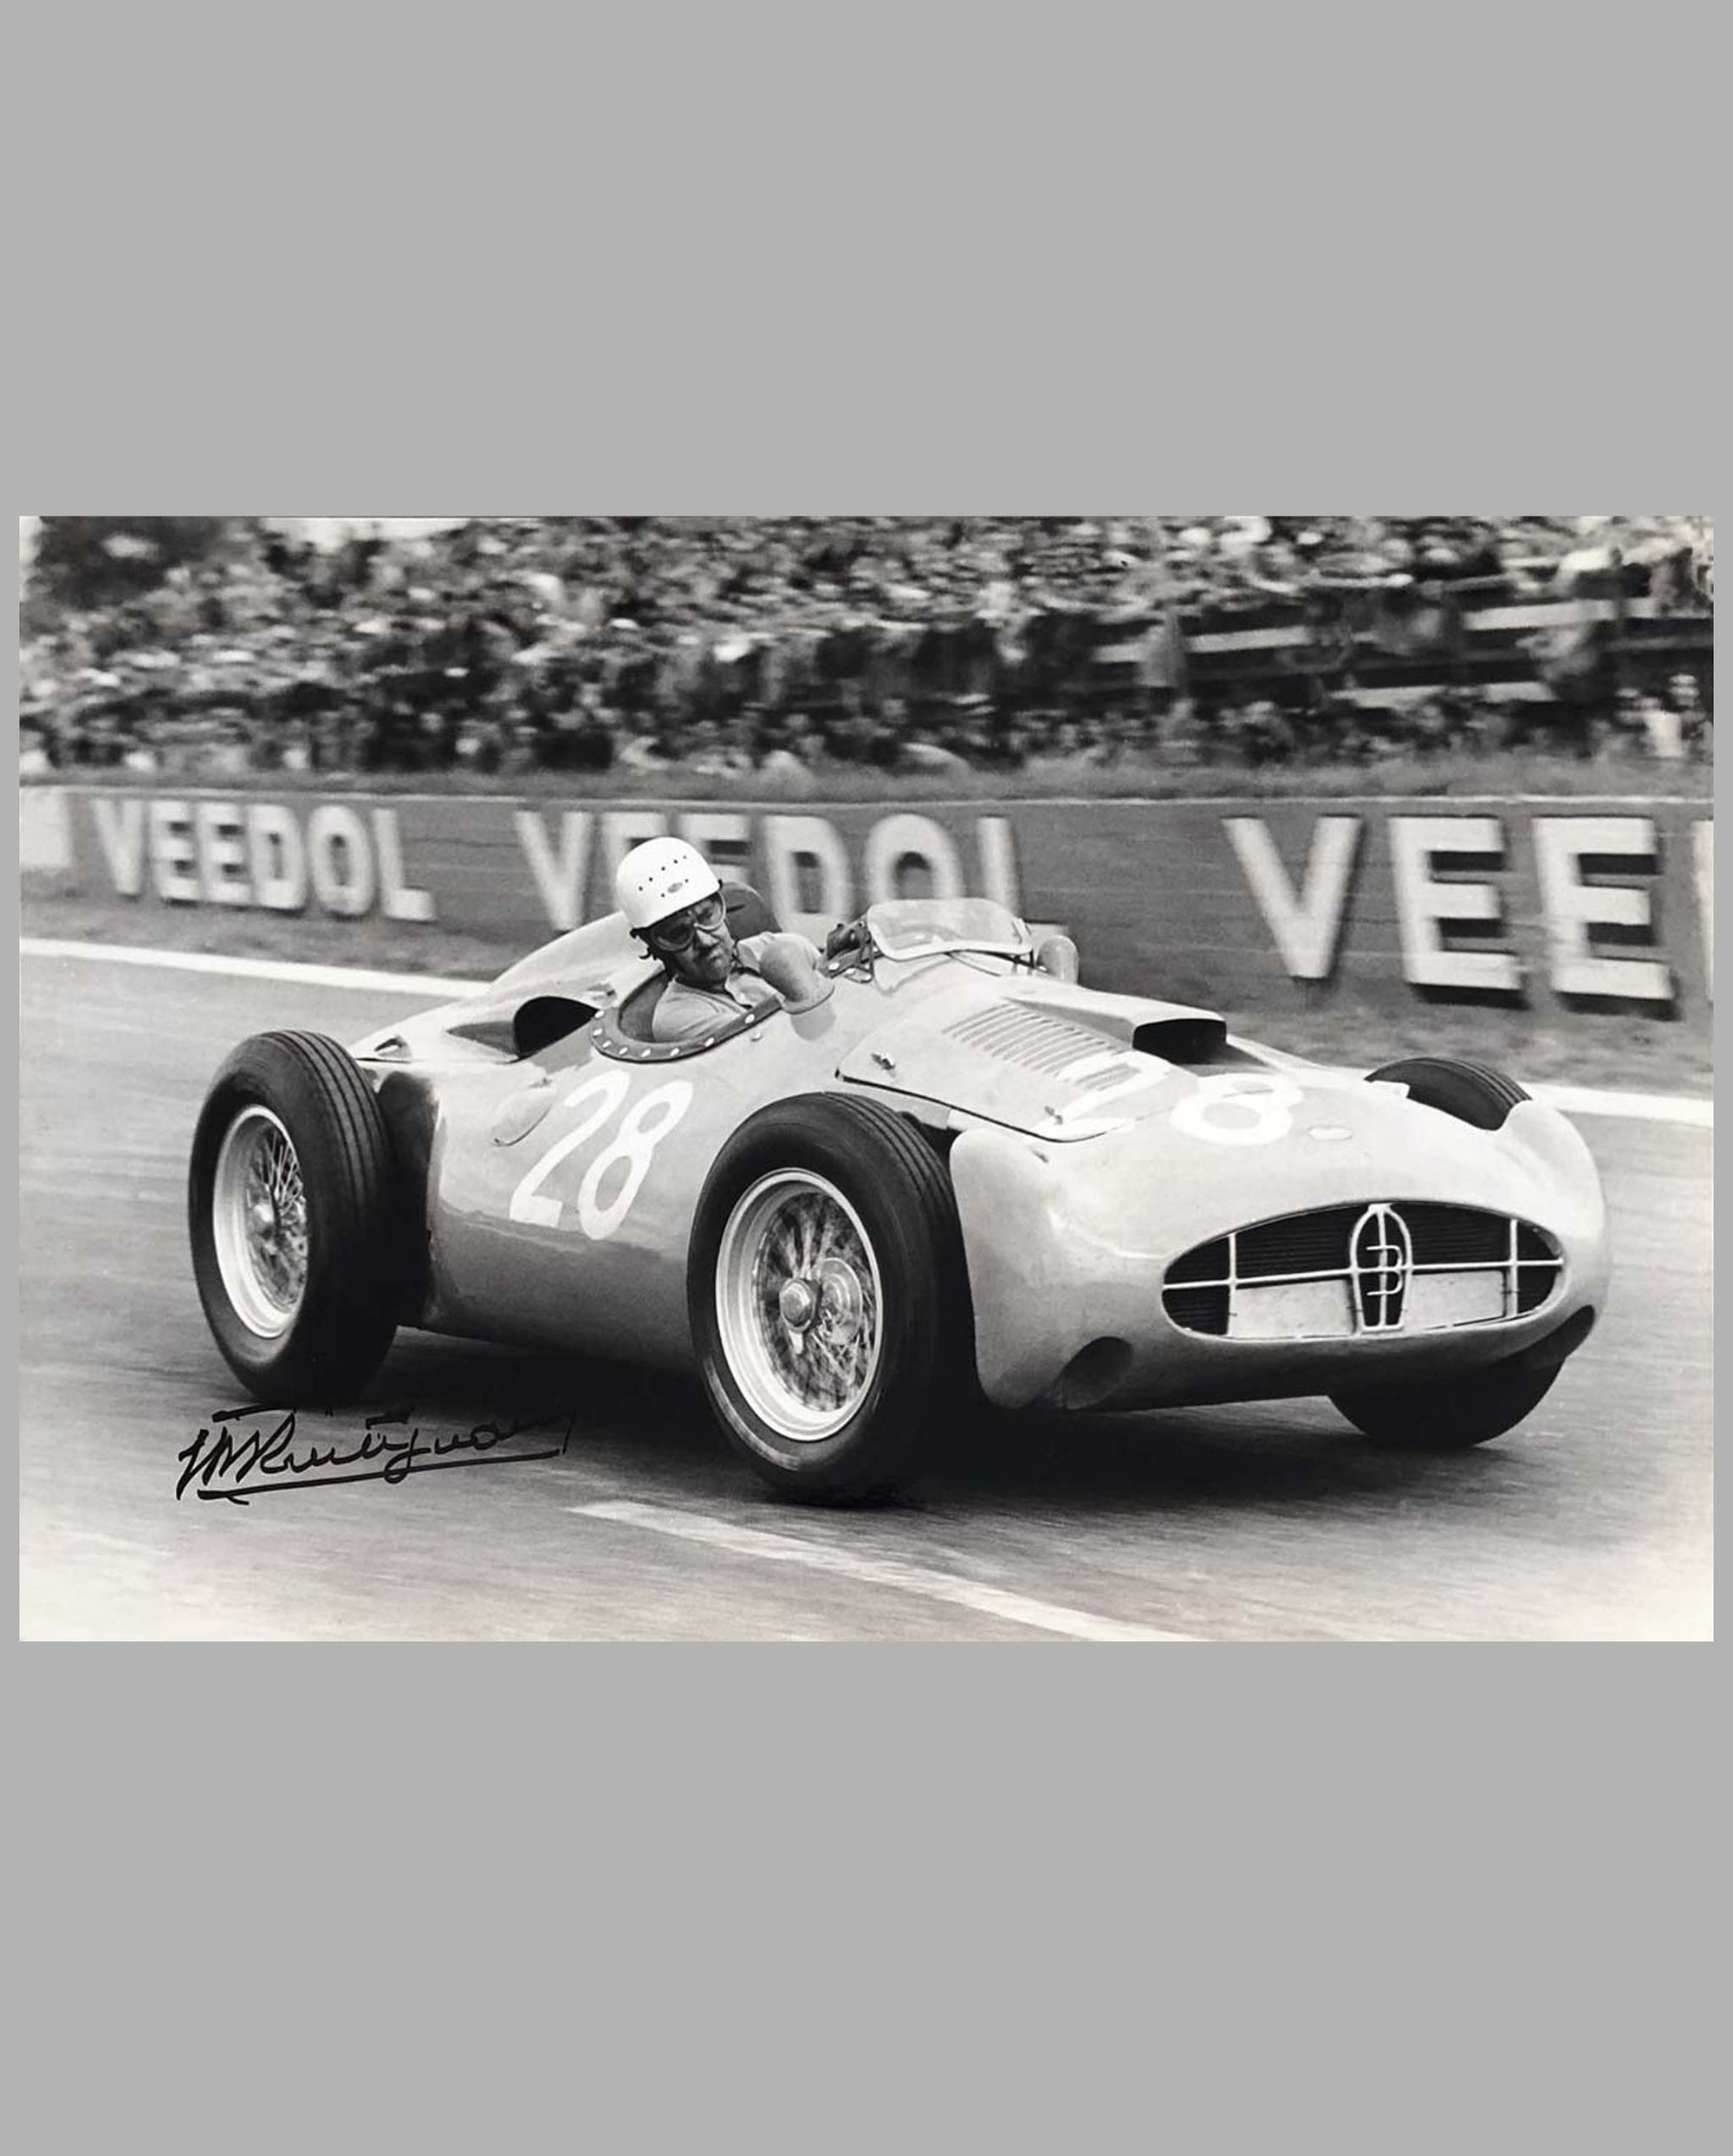 1956 Grand Prix Reims photograph by Bernard Cahier, autographed by Maurice Trintignant